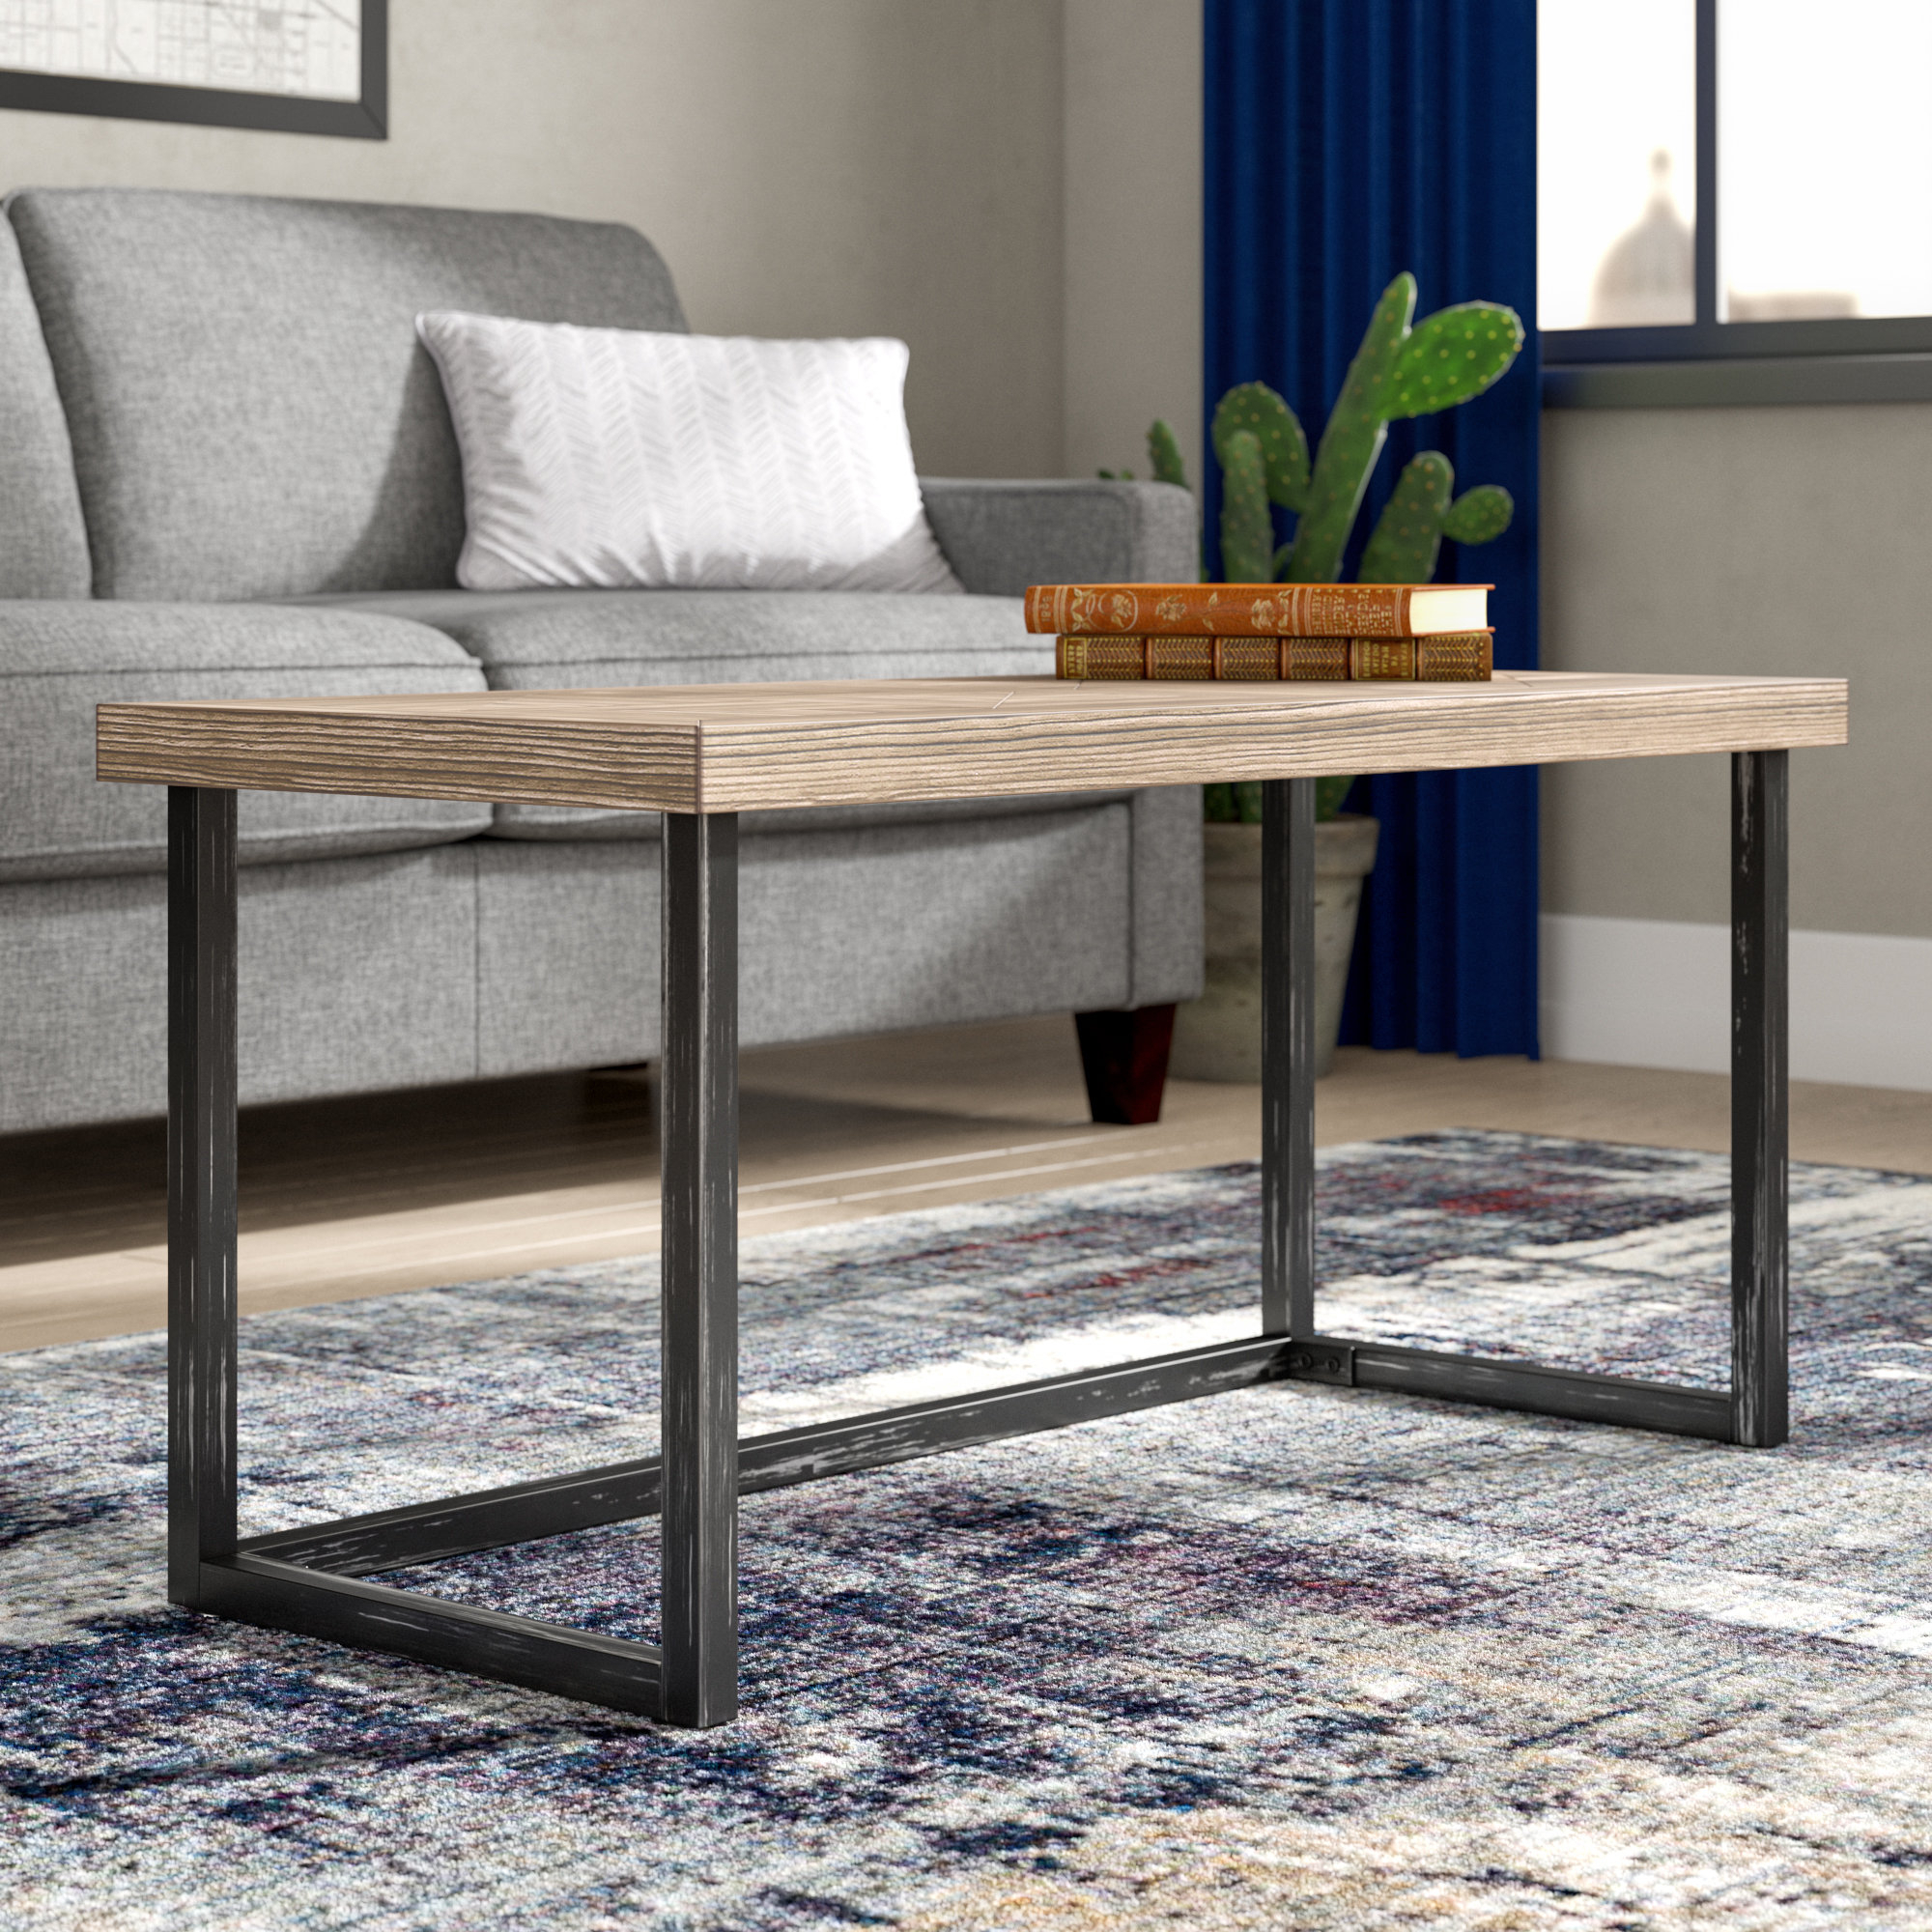 Parquet Coffee Tables Throughout Latest Adalheid Parquet Coffee Table & Reviews (View 16 of 20)